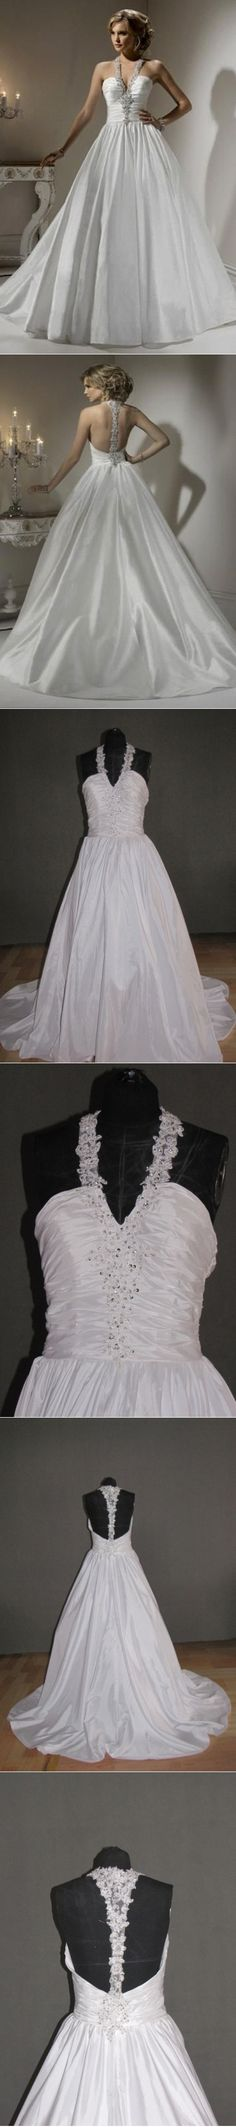 Informal Small Bridal Gowns Understated Diamonds No Back Weddings Courthouse…